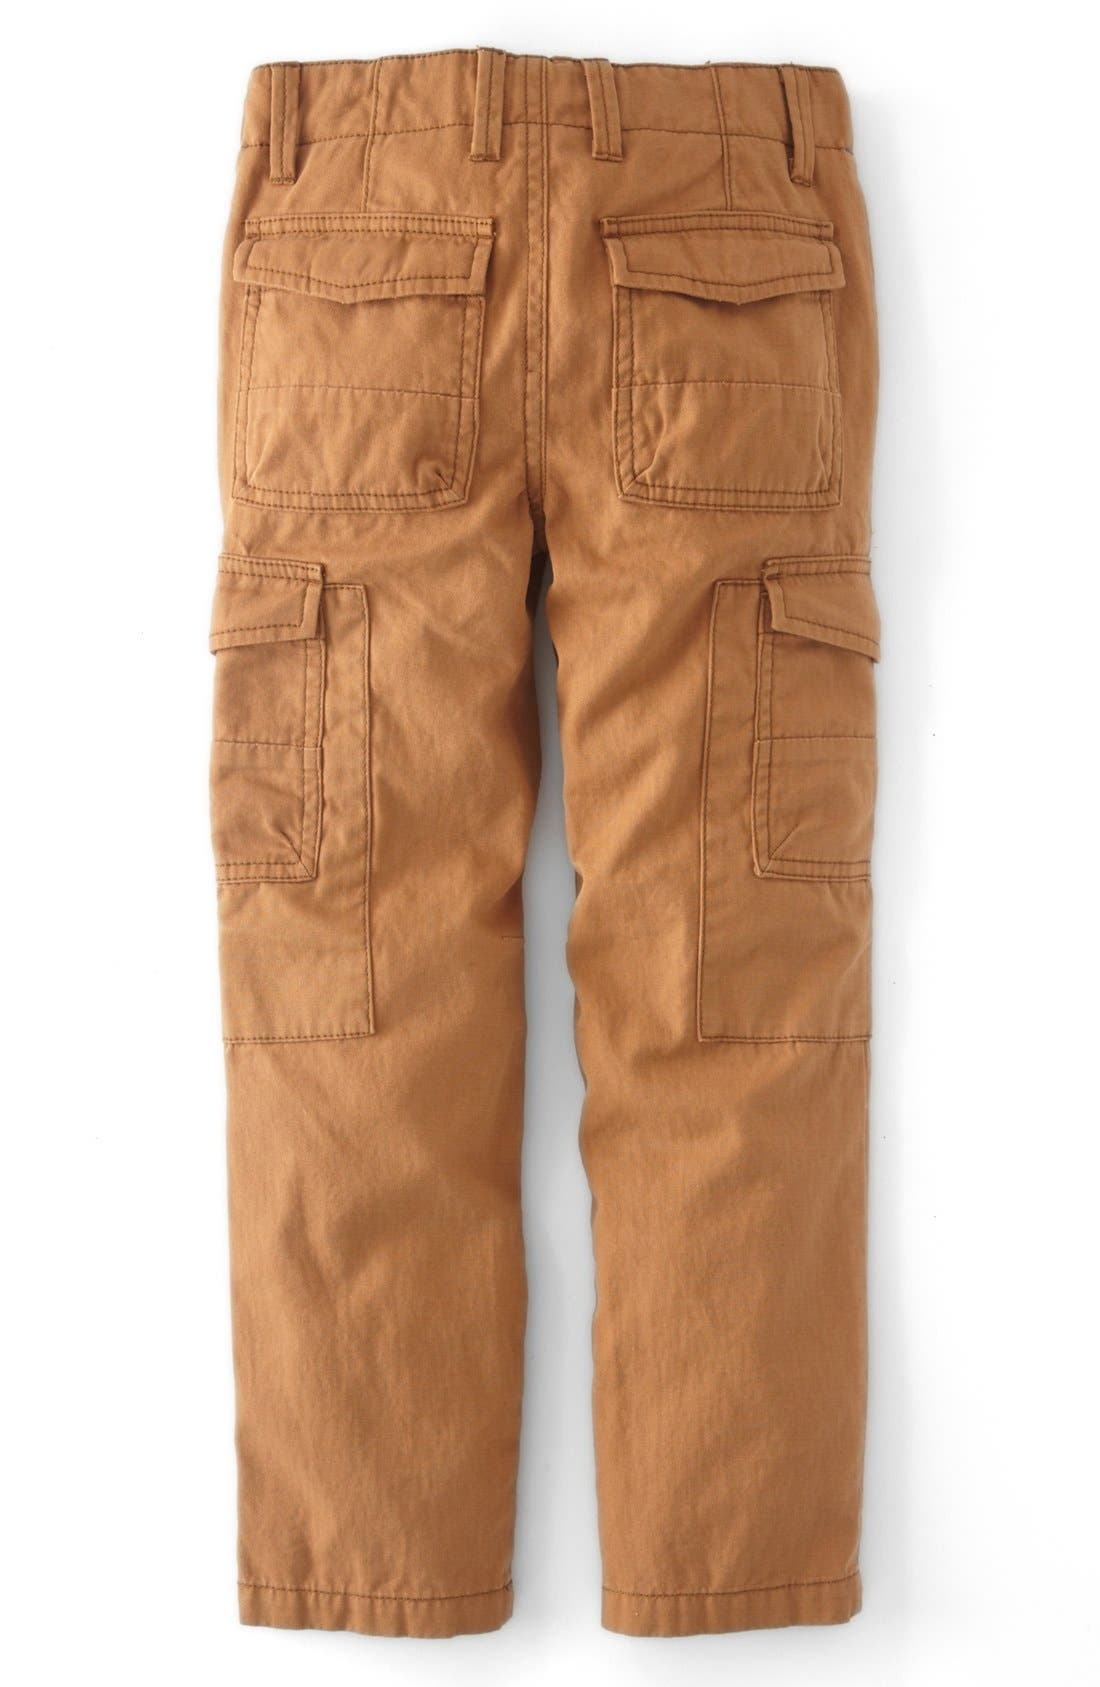 Alternate Image 2  - Mini Boden Slim Fit Cargo Pants (Toddler Boys, Little Boys & Big Boys)